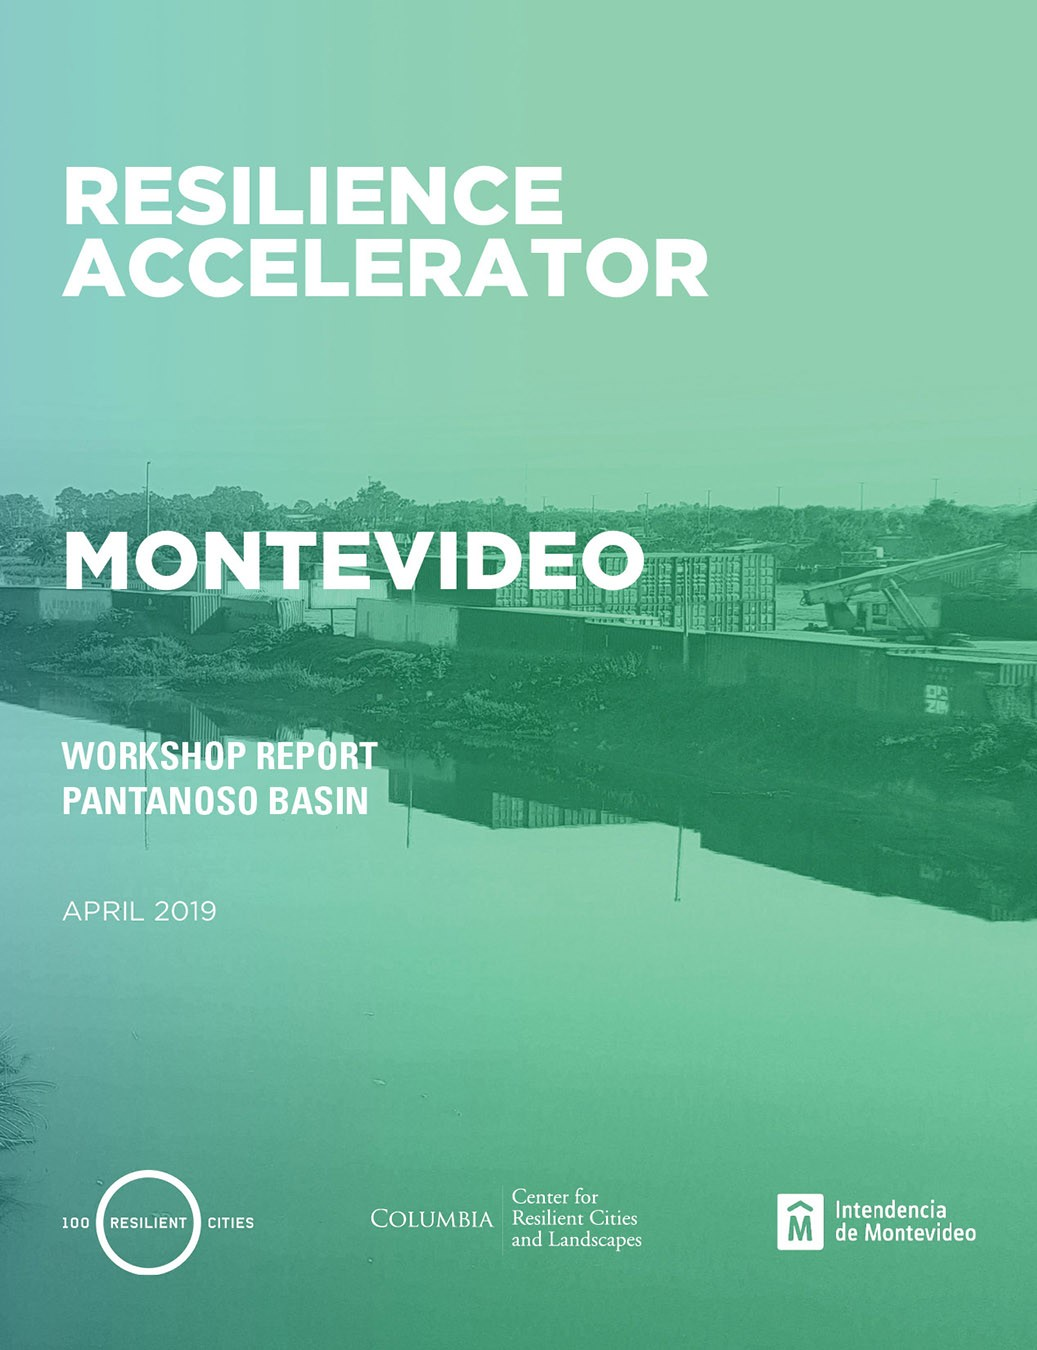 Montevideo Resilience Accelerator